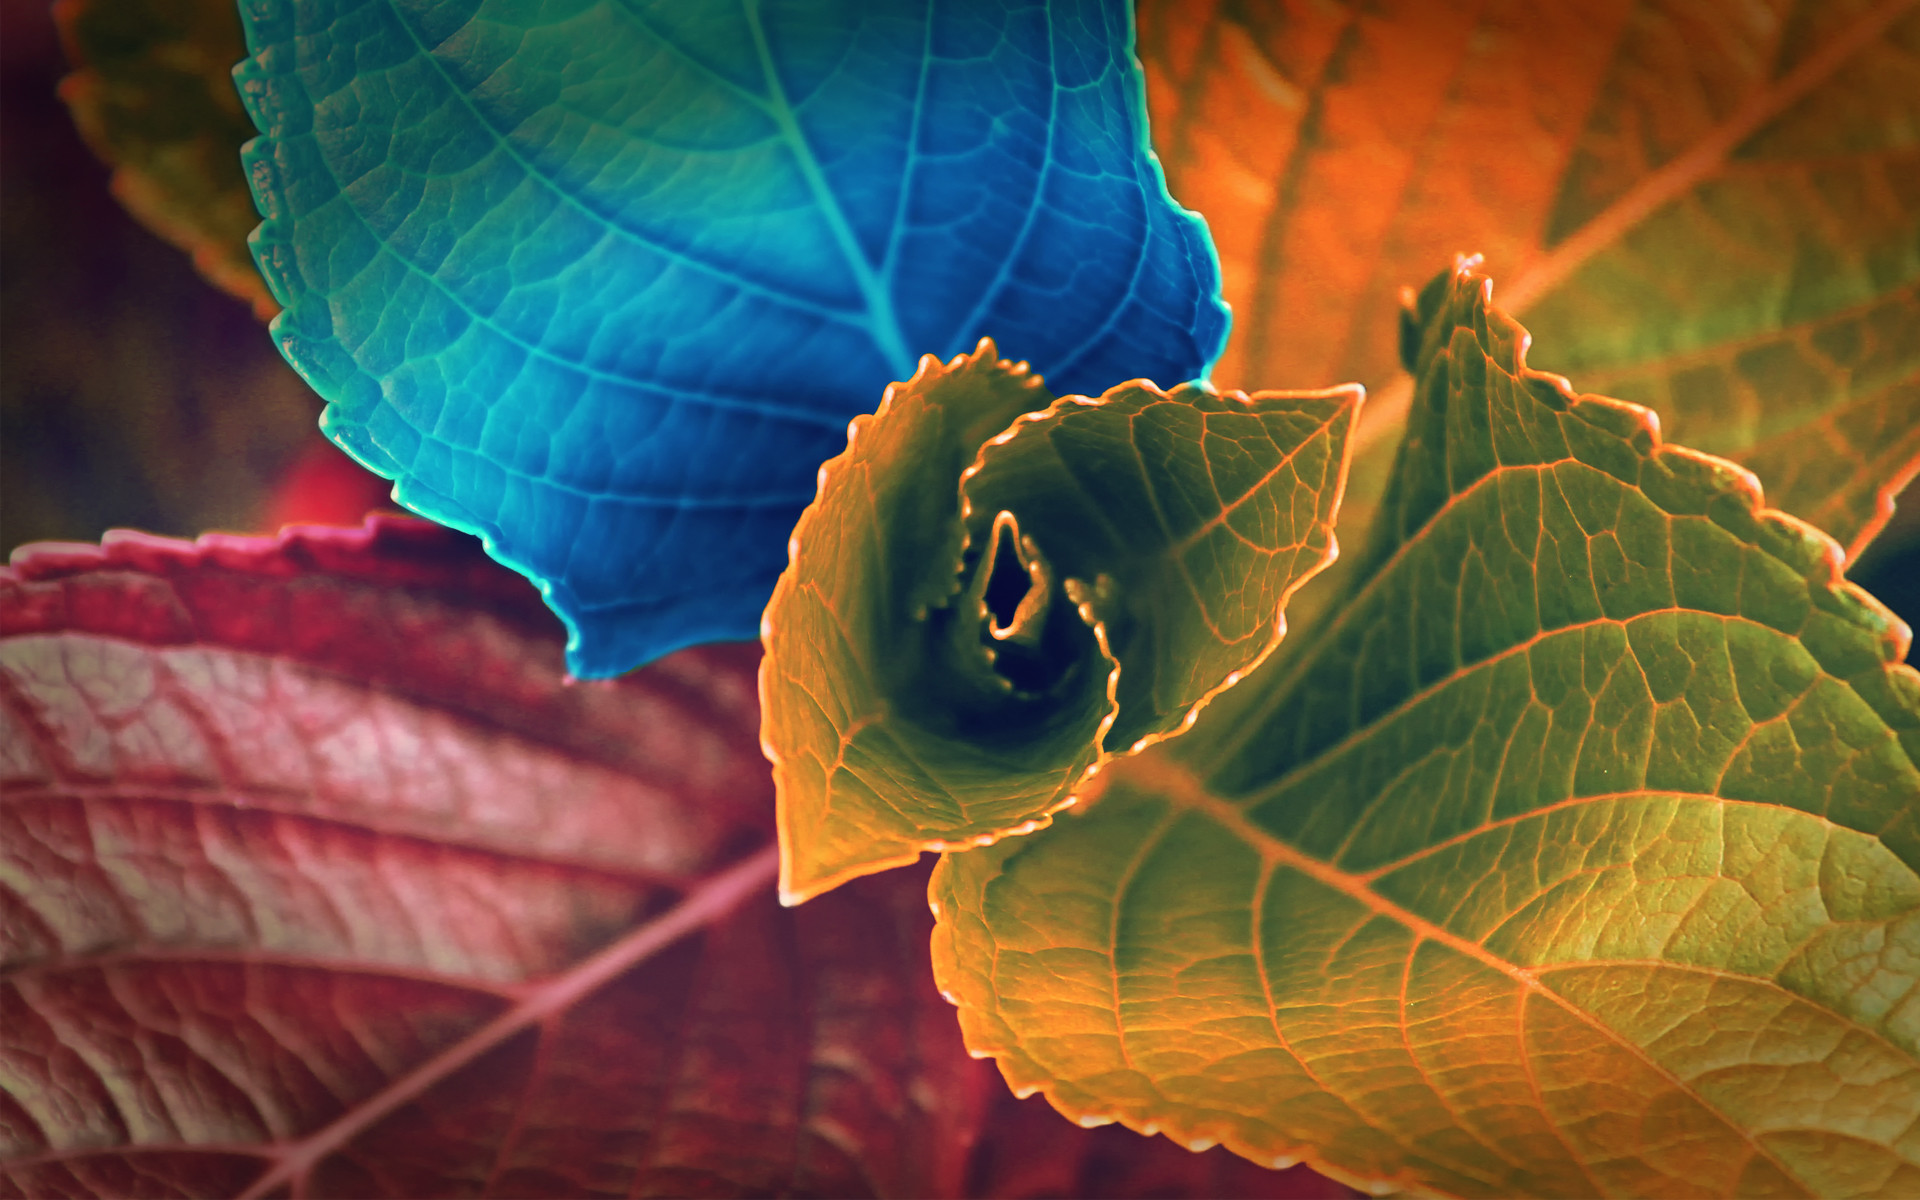 … free download Basic Color Leaves Yellow Red Blue Abstract HD wallpaper